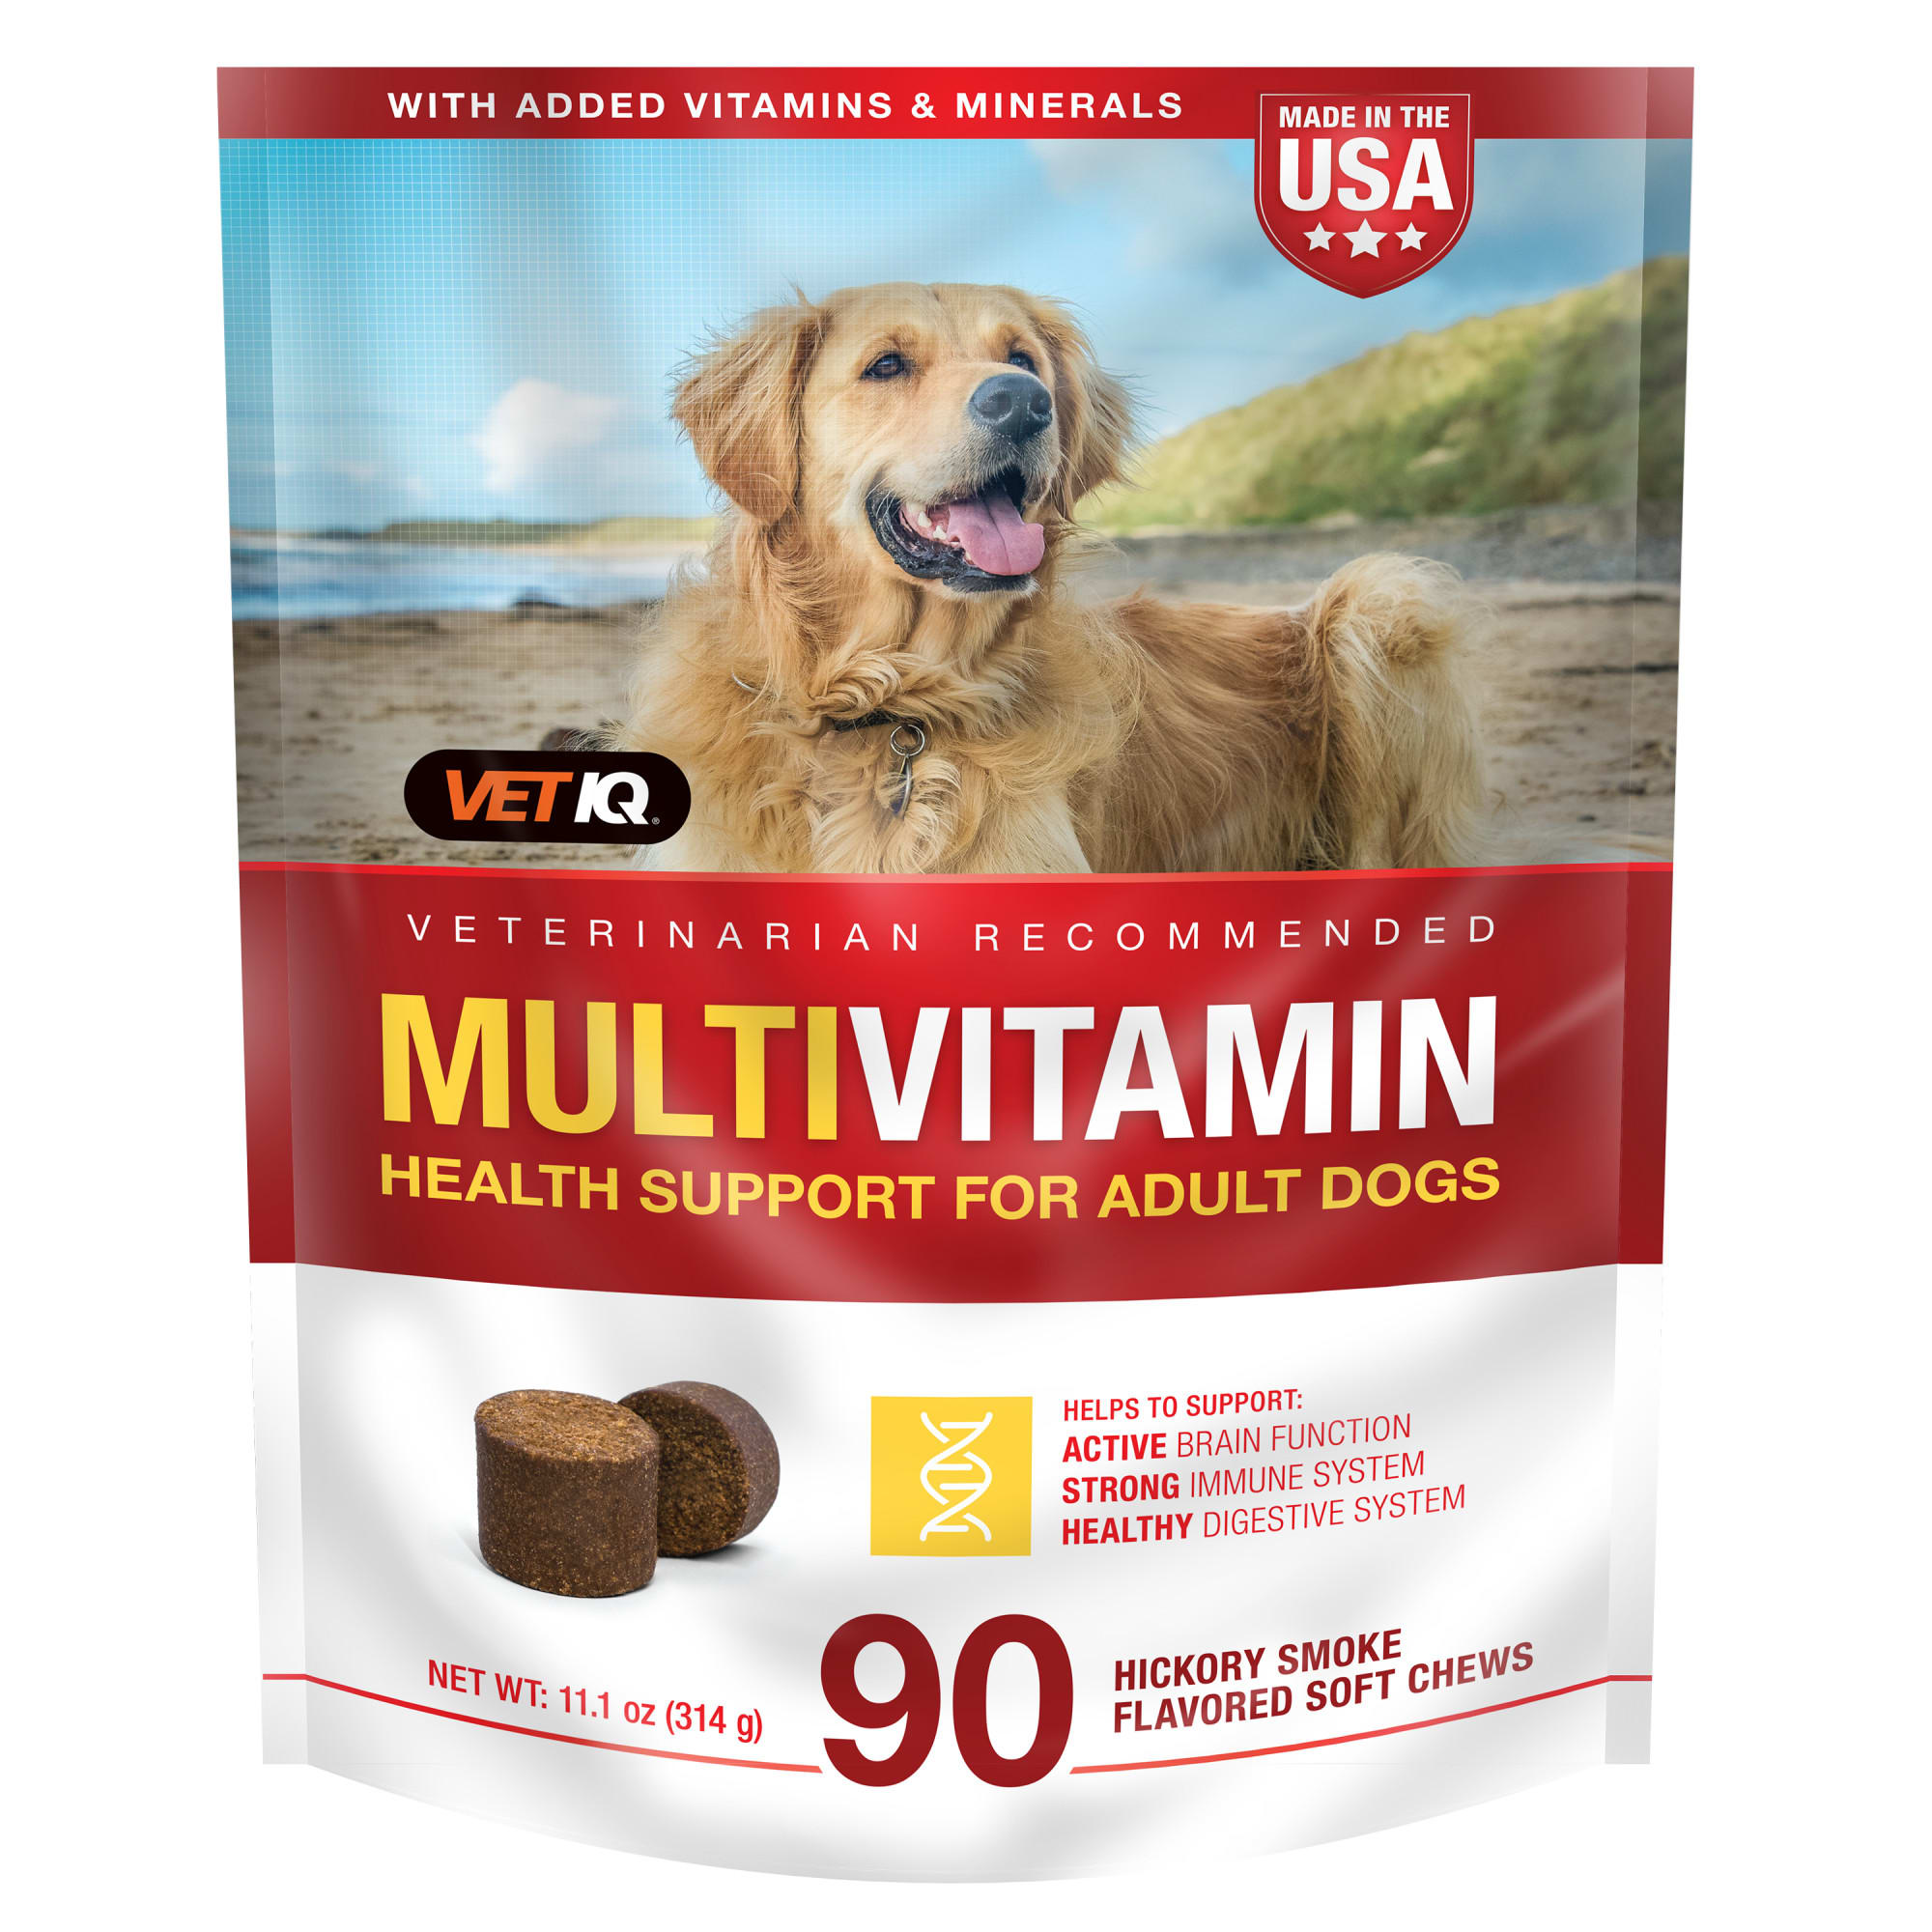 VetIQ Multivitamin Health Support Hickory Smoke Flavored Dog Soft Chews, 11.1 oz., Count of 90